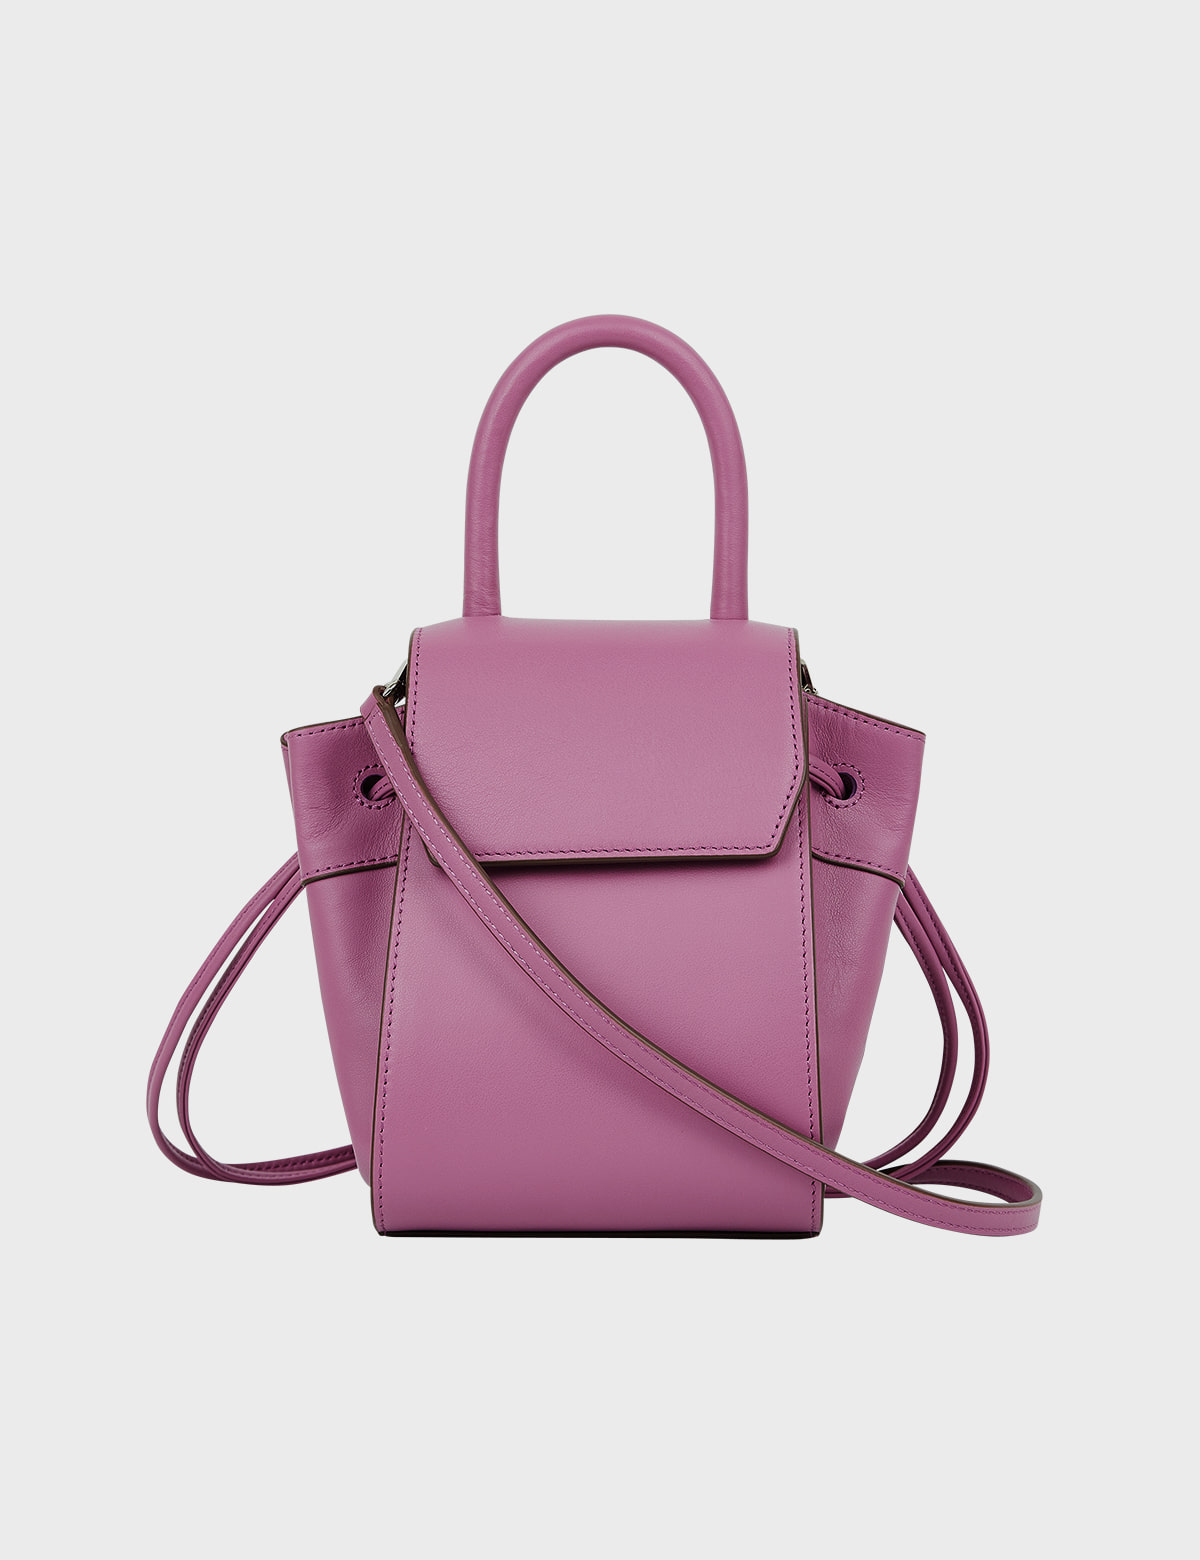 MAISON246,[퍼/메탈체인증정]246 PANIER BAG - PINK PURPLE,No.246